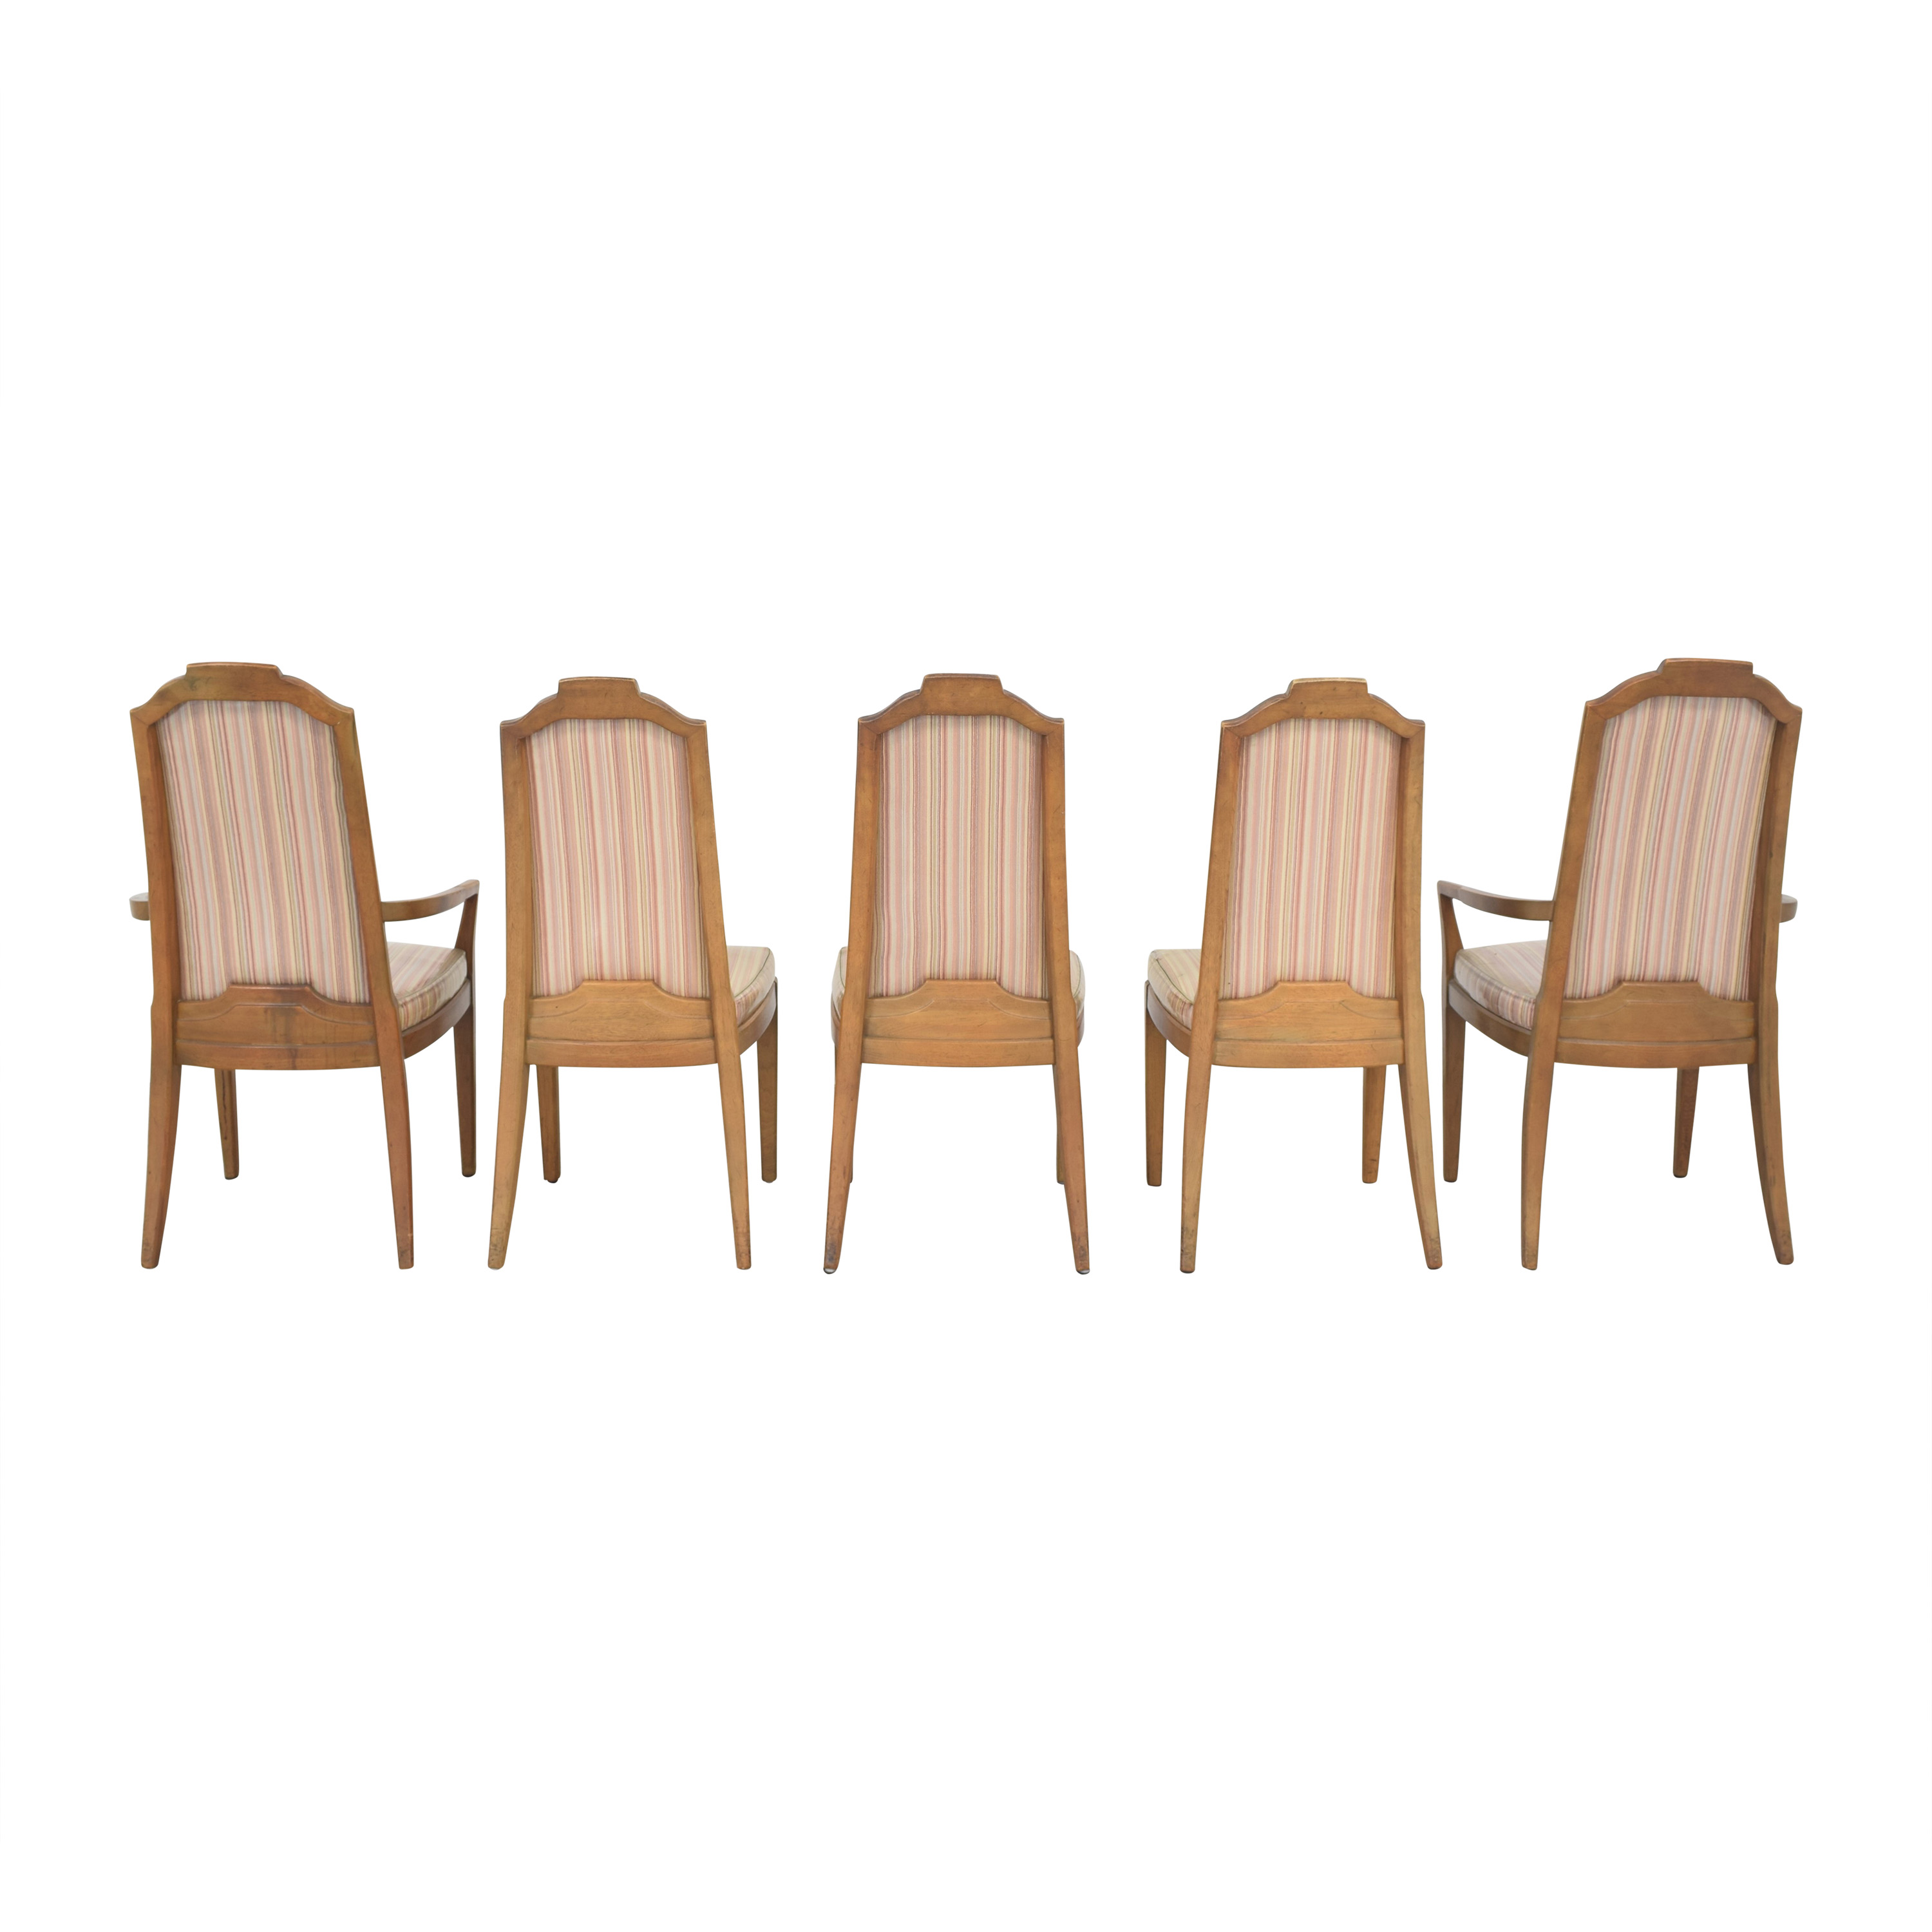 Drexel Drexel Stripe Upholstered Dining Chairs Chairs